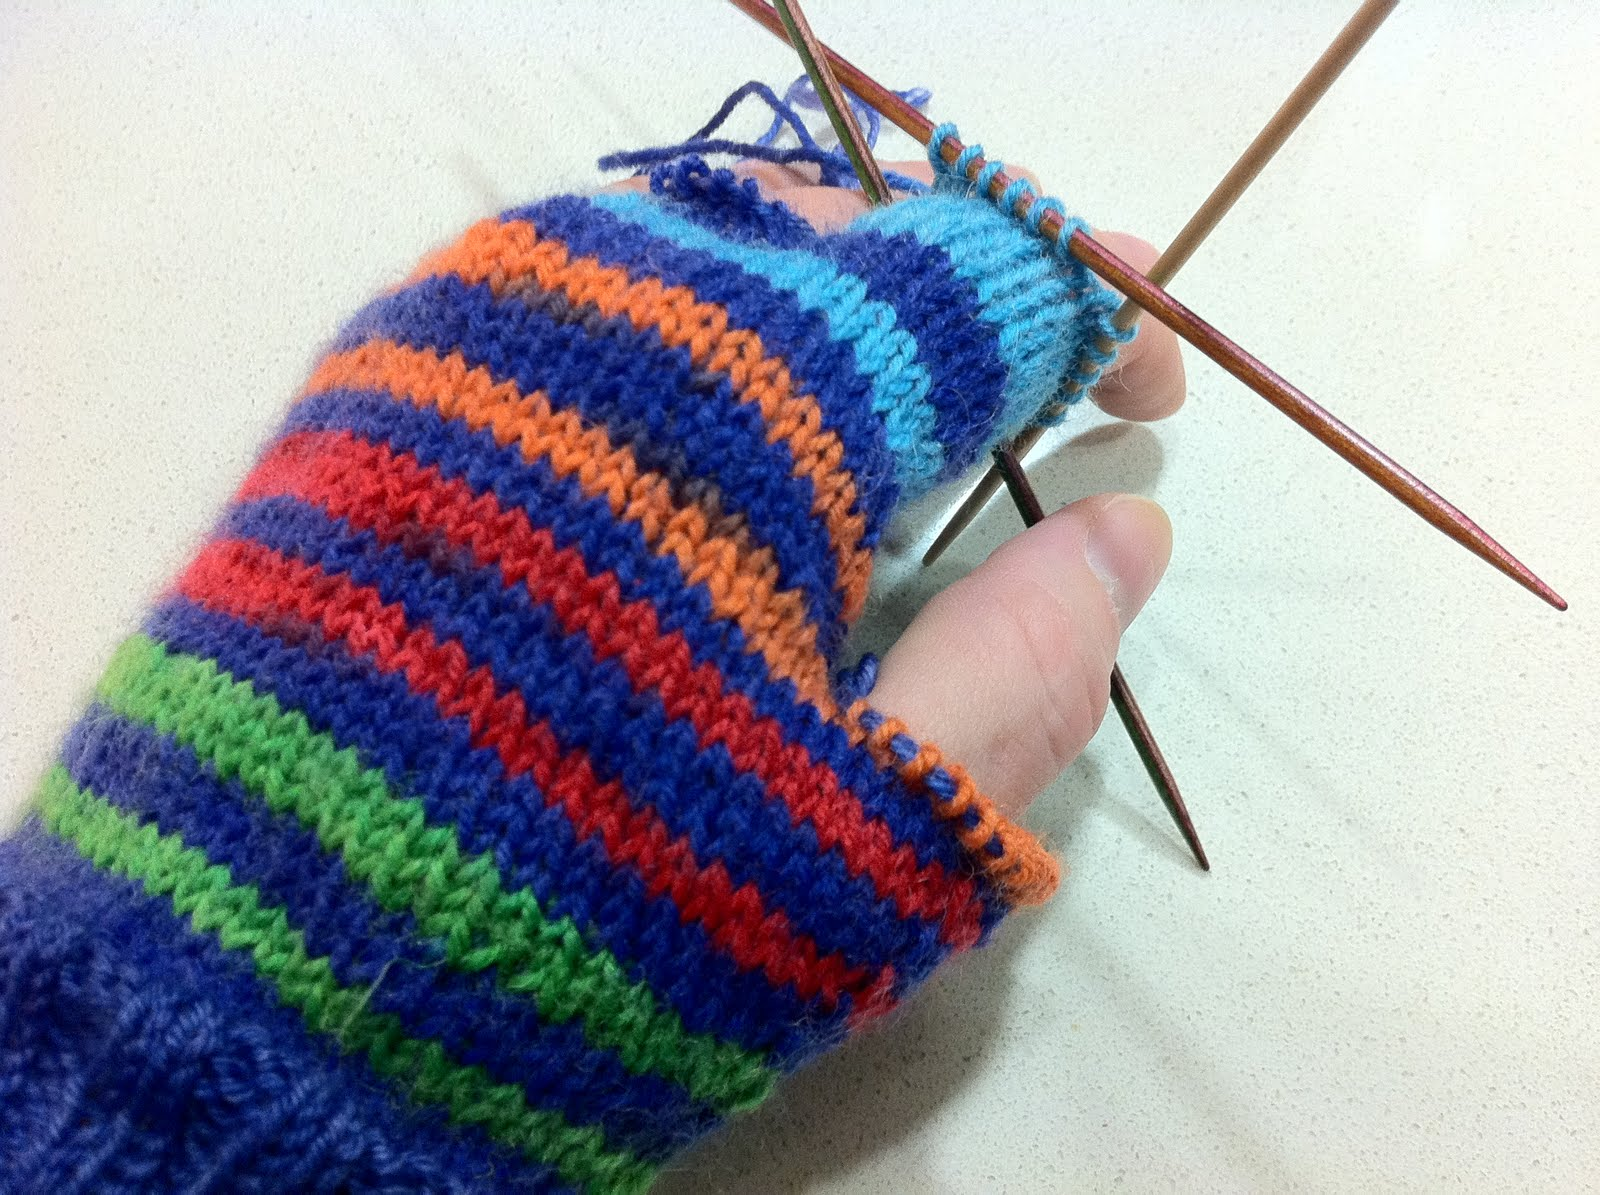 Knit Pattern Gloves Sock Yarn : Talking to the Wall: Sock yarn glove knitting pattern